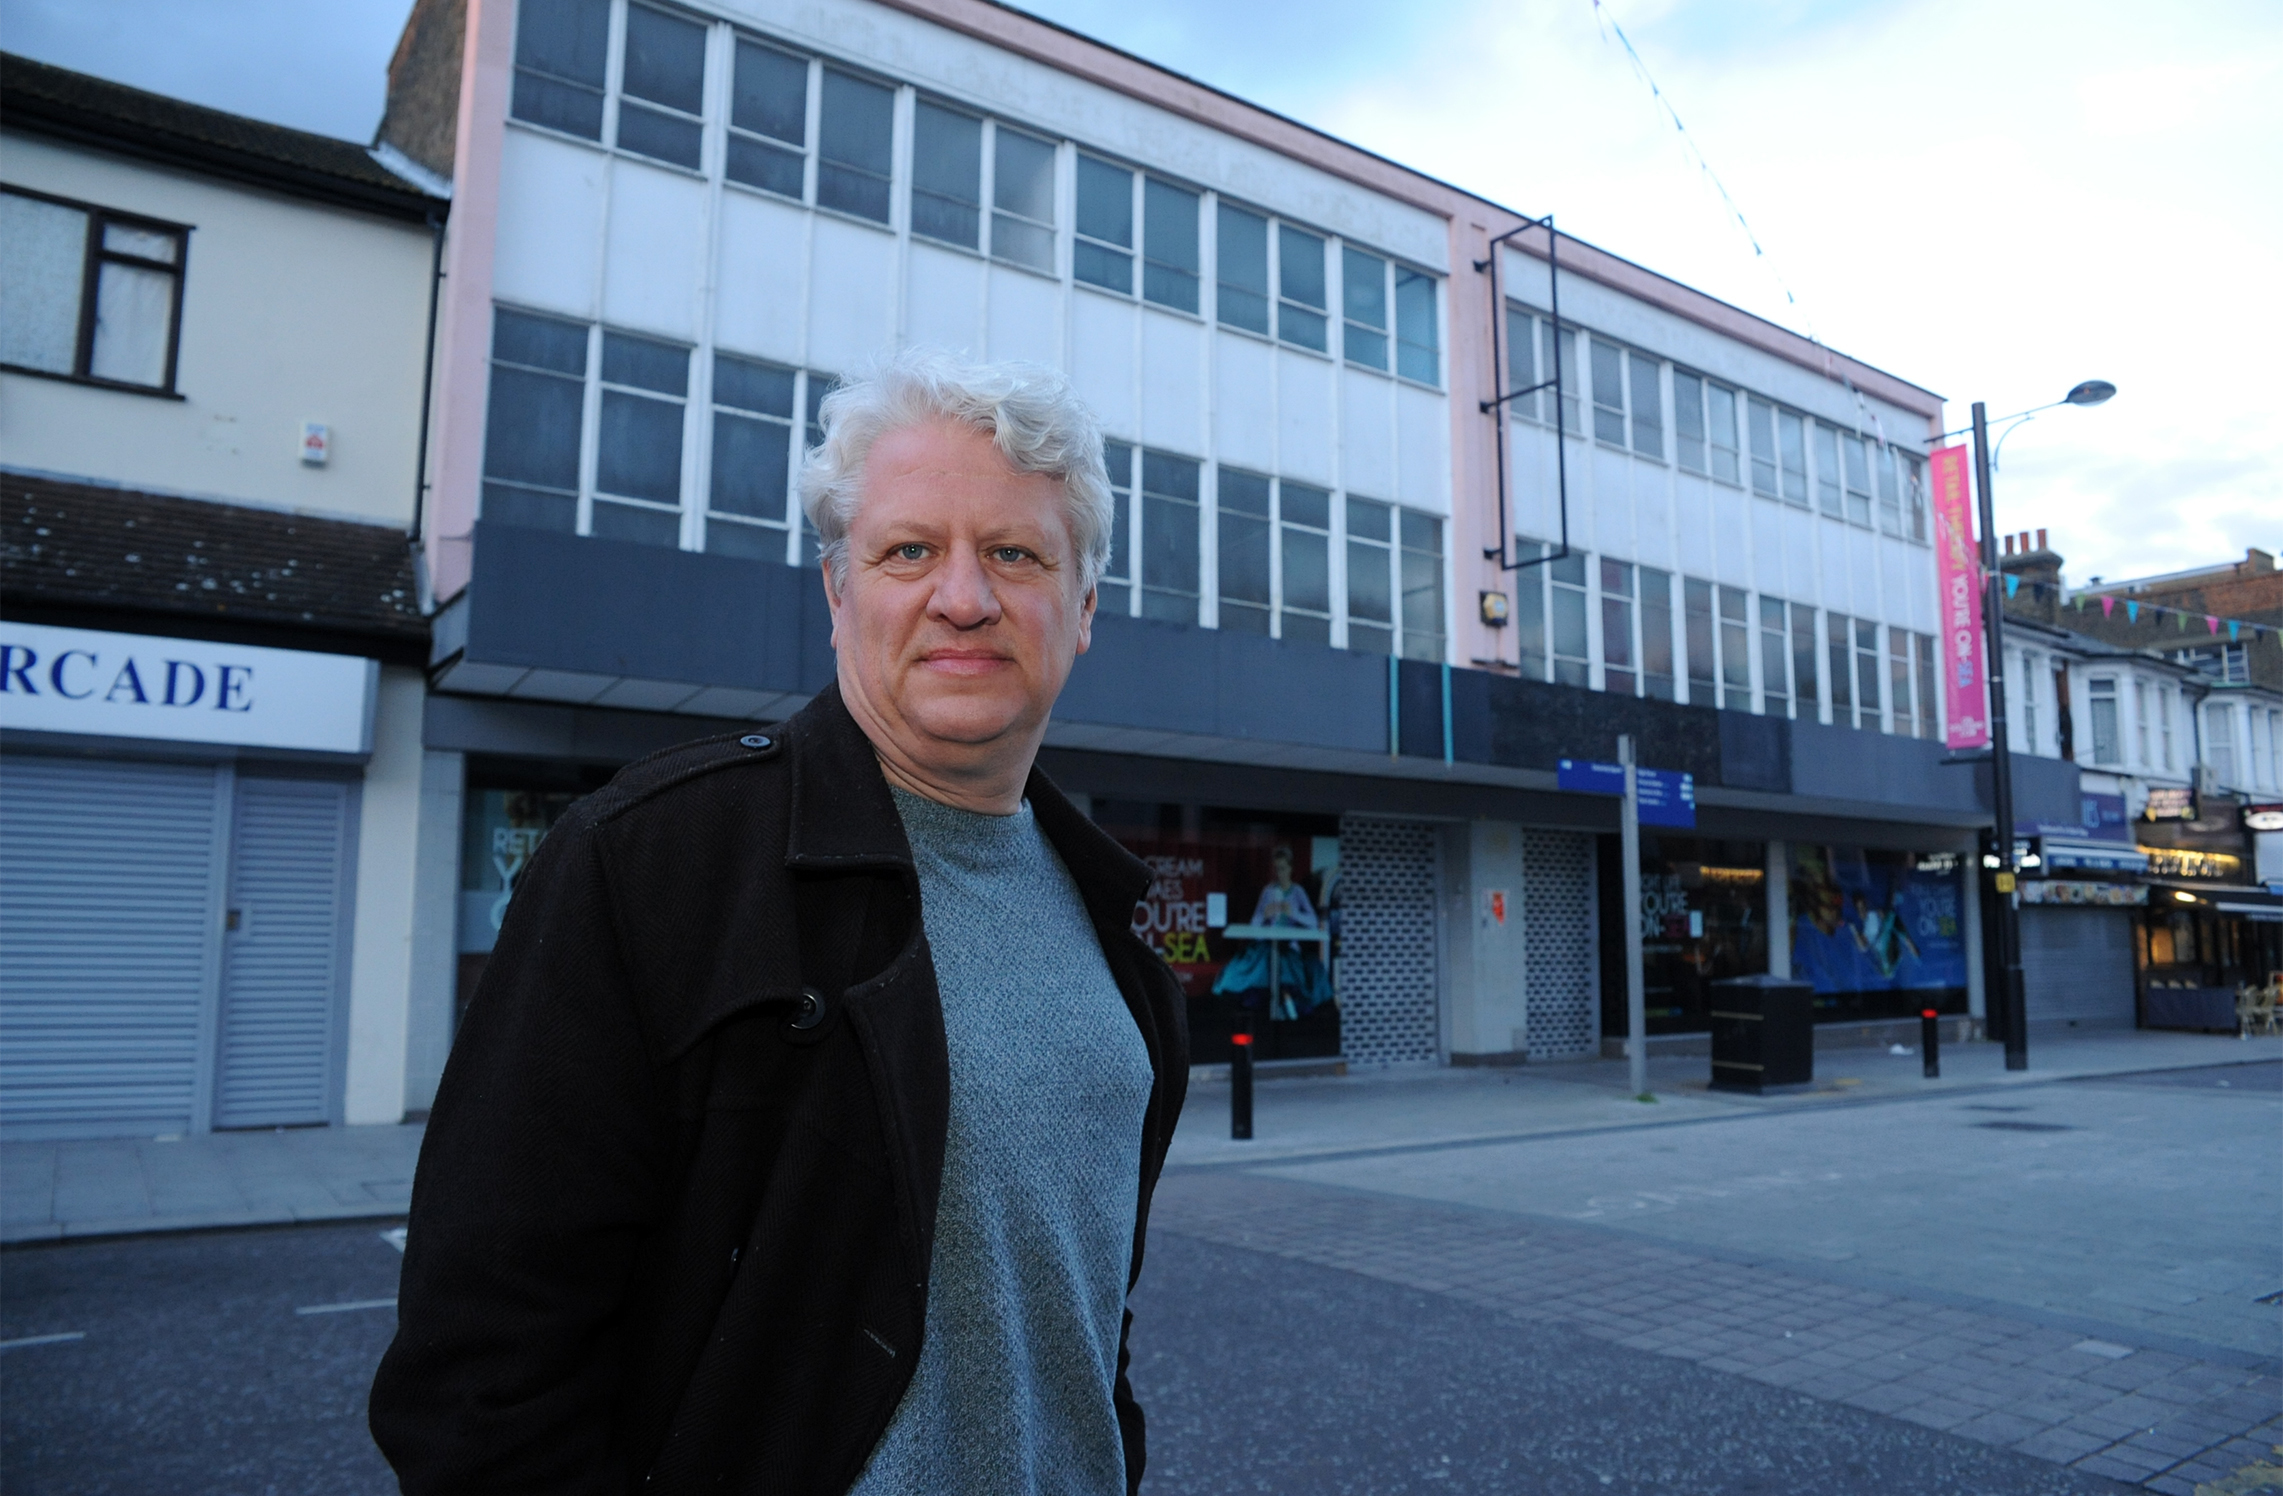 04/03/2016                          Maxine Clarke.Julian Ware-Lane outside the old HMV store Queens rd, Southen Revolution have plans to open a bar.